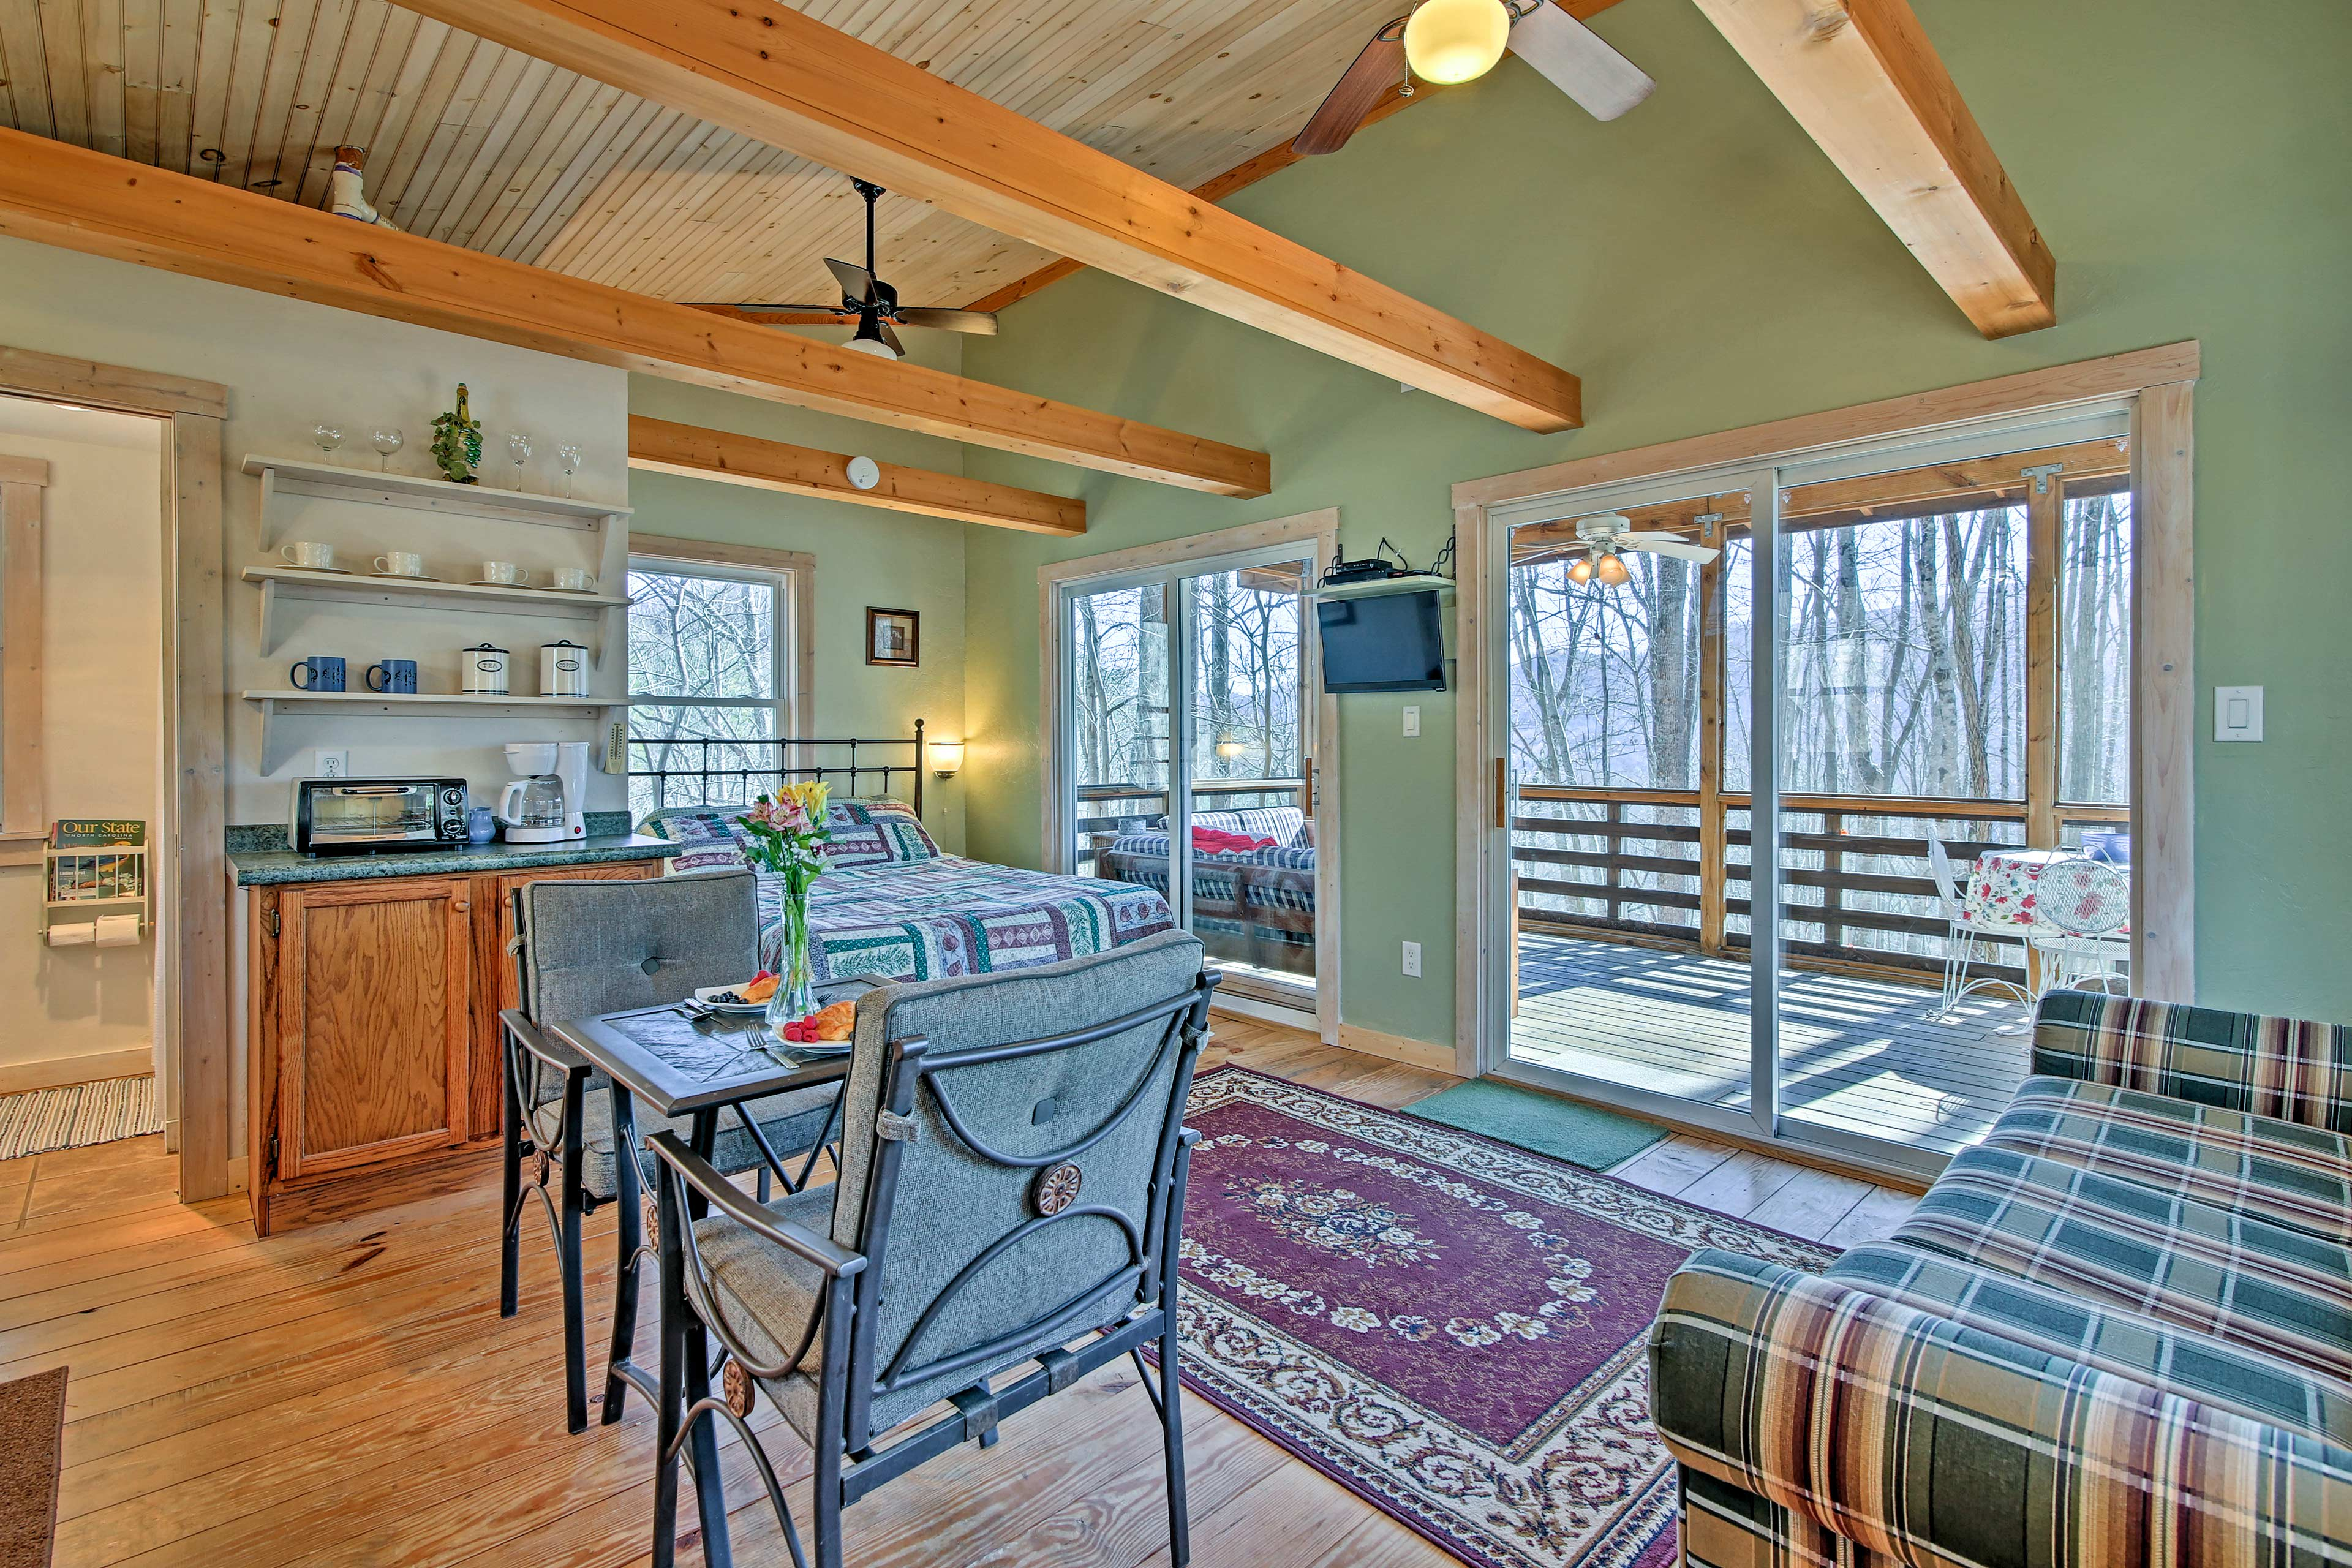 The cabin features exposed-beam ceilings.